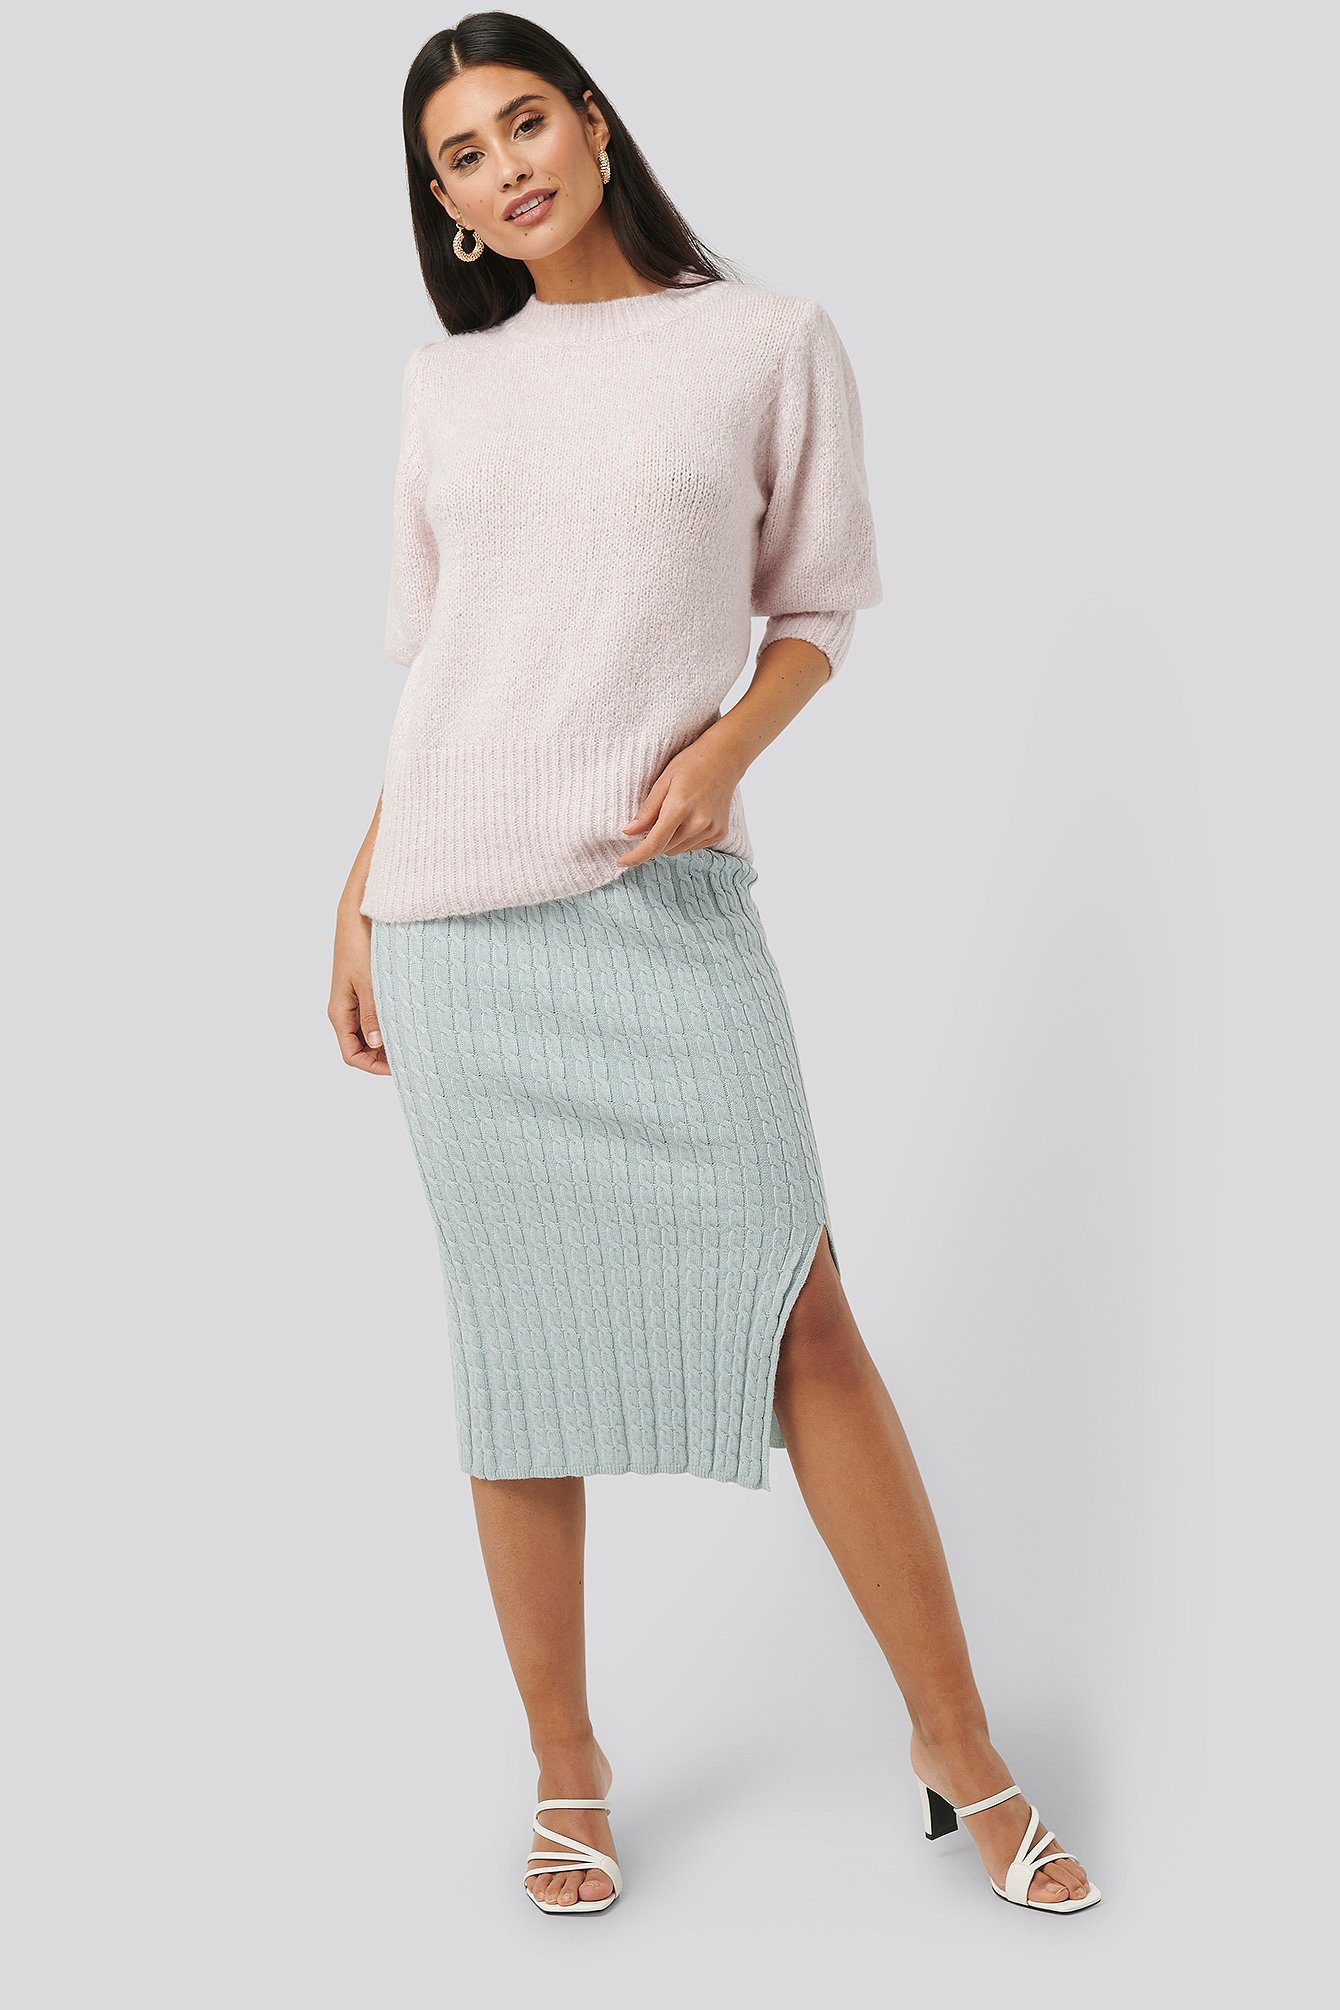 Light Blue Knitted Pencil Skirt